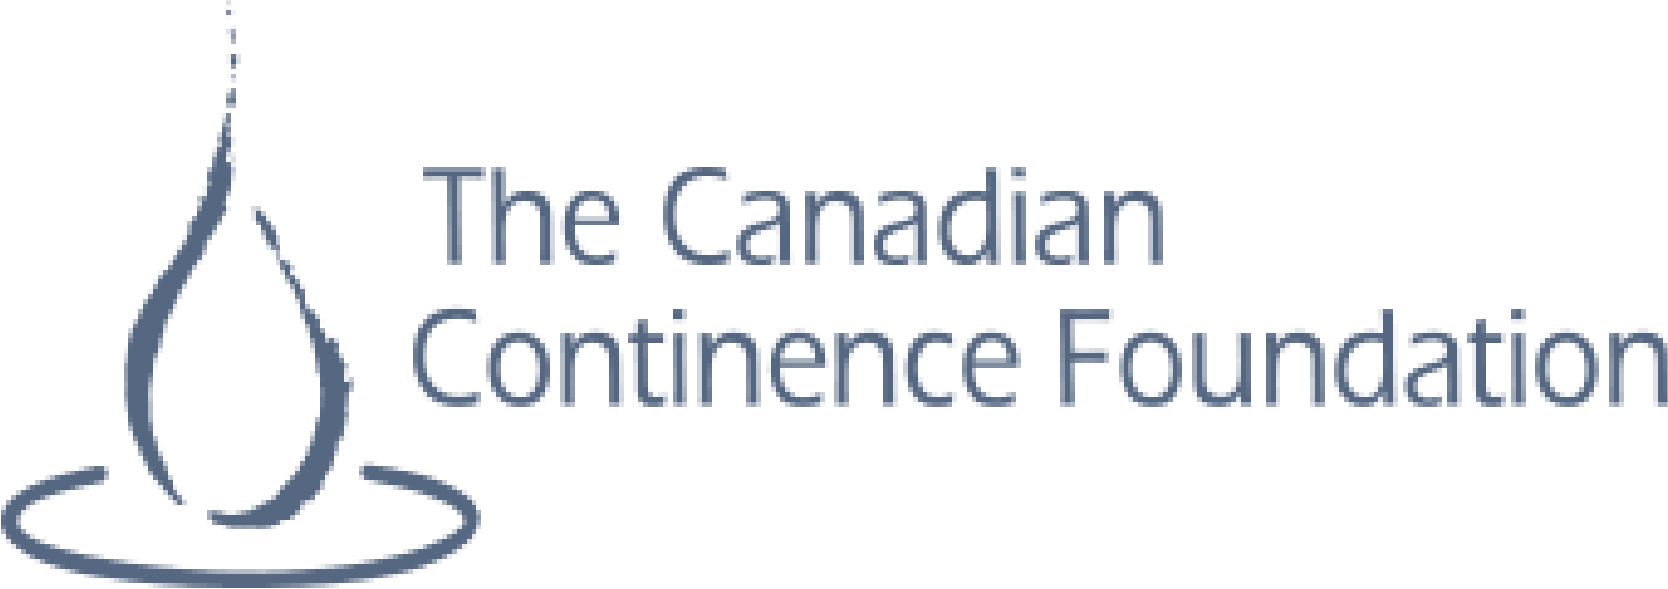 The logo for the Canadian Continence Foundation